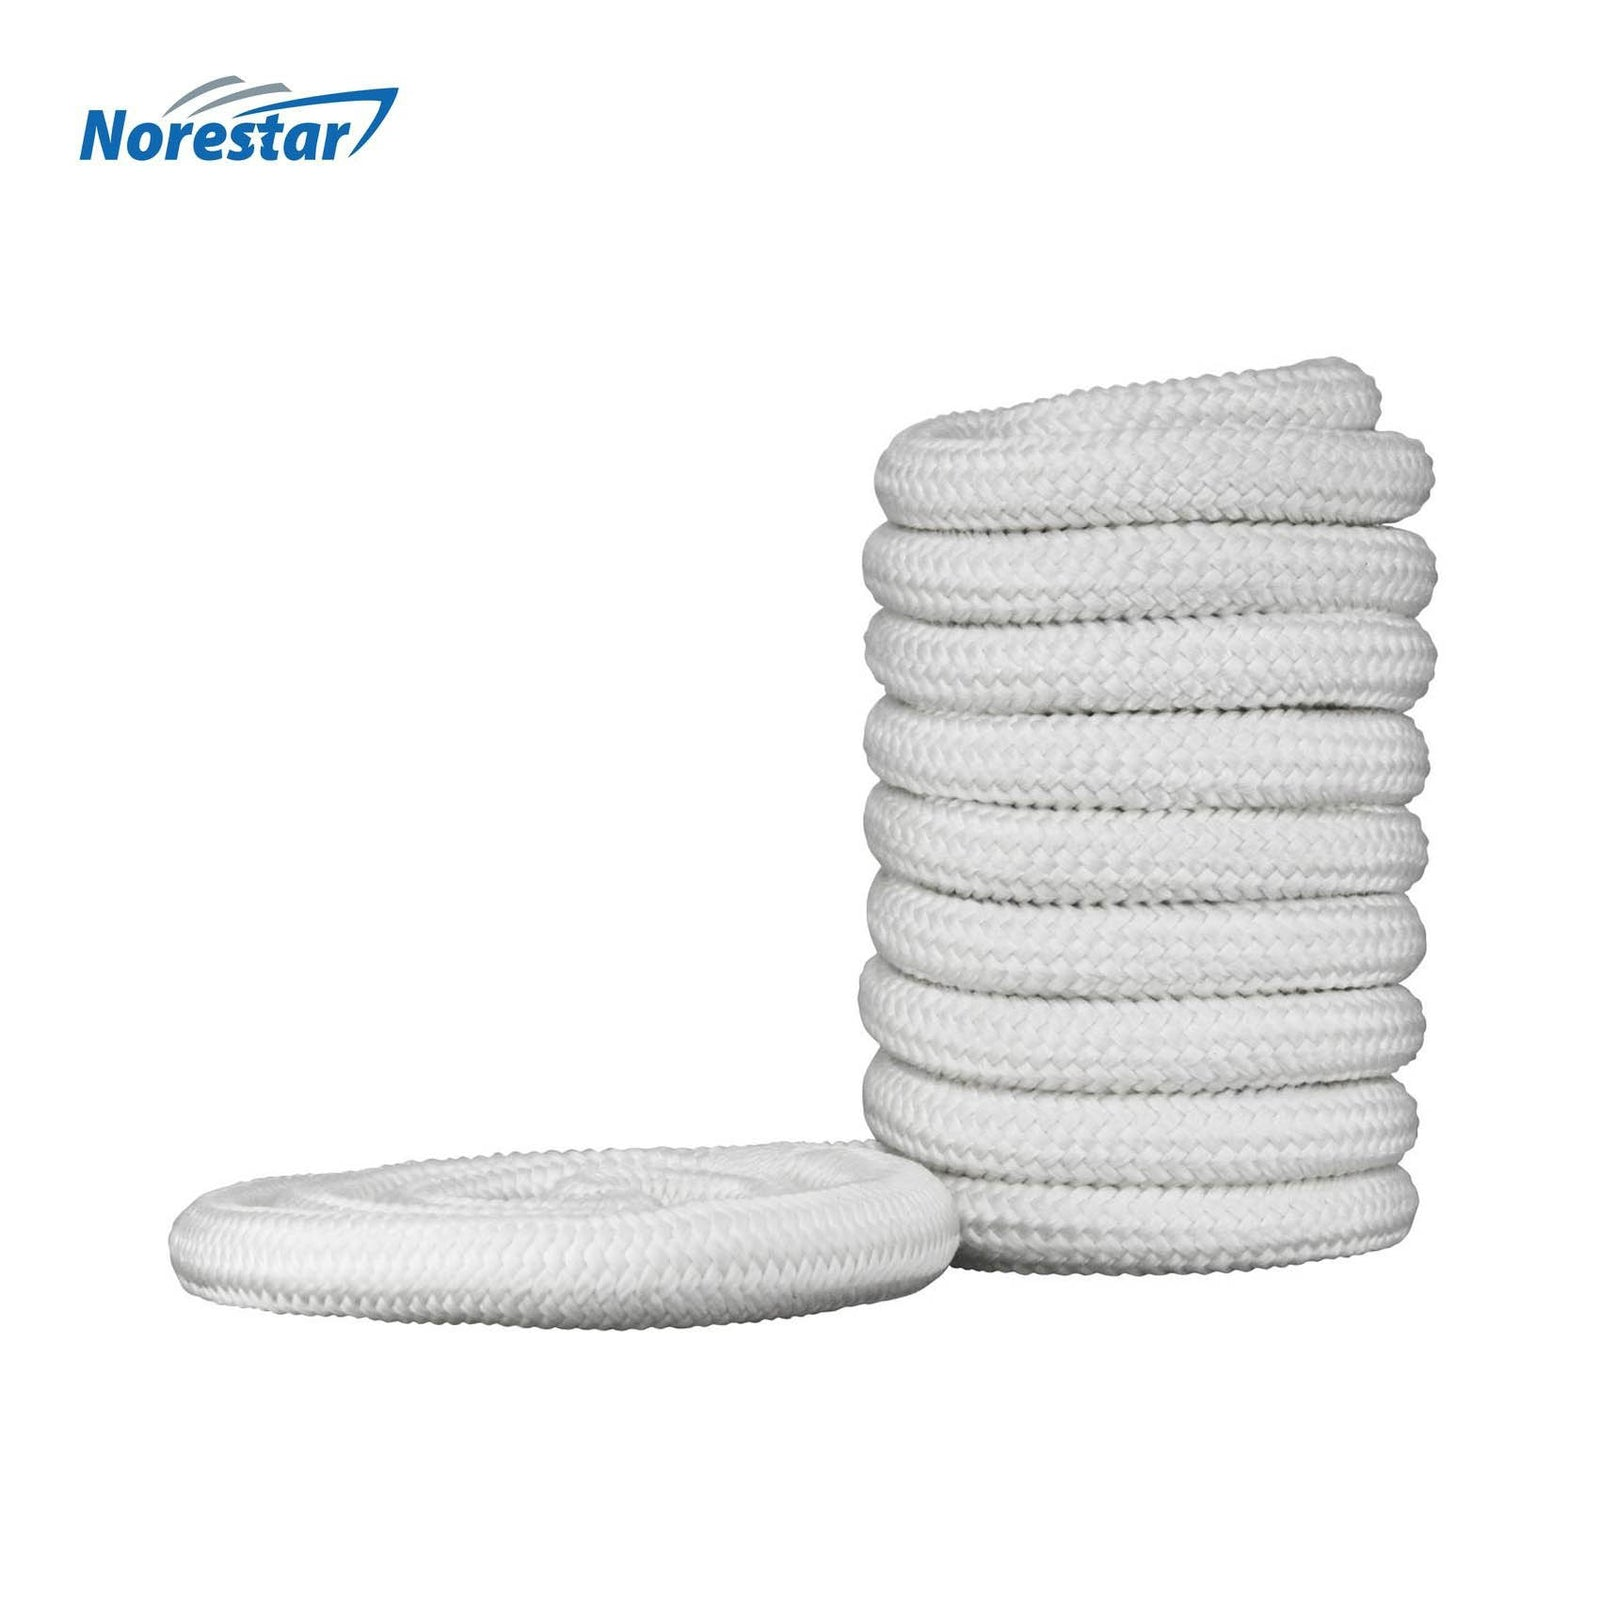 Norestar Braided Nylon Dock Line, White